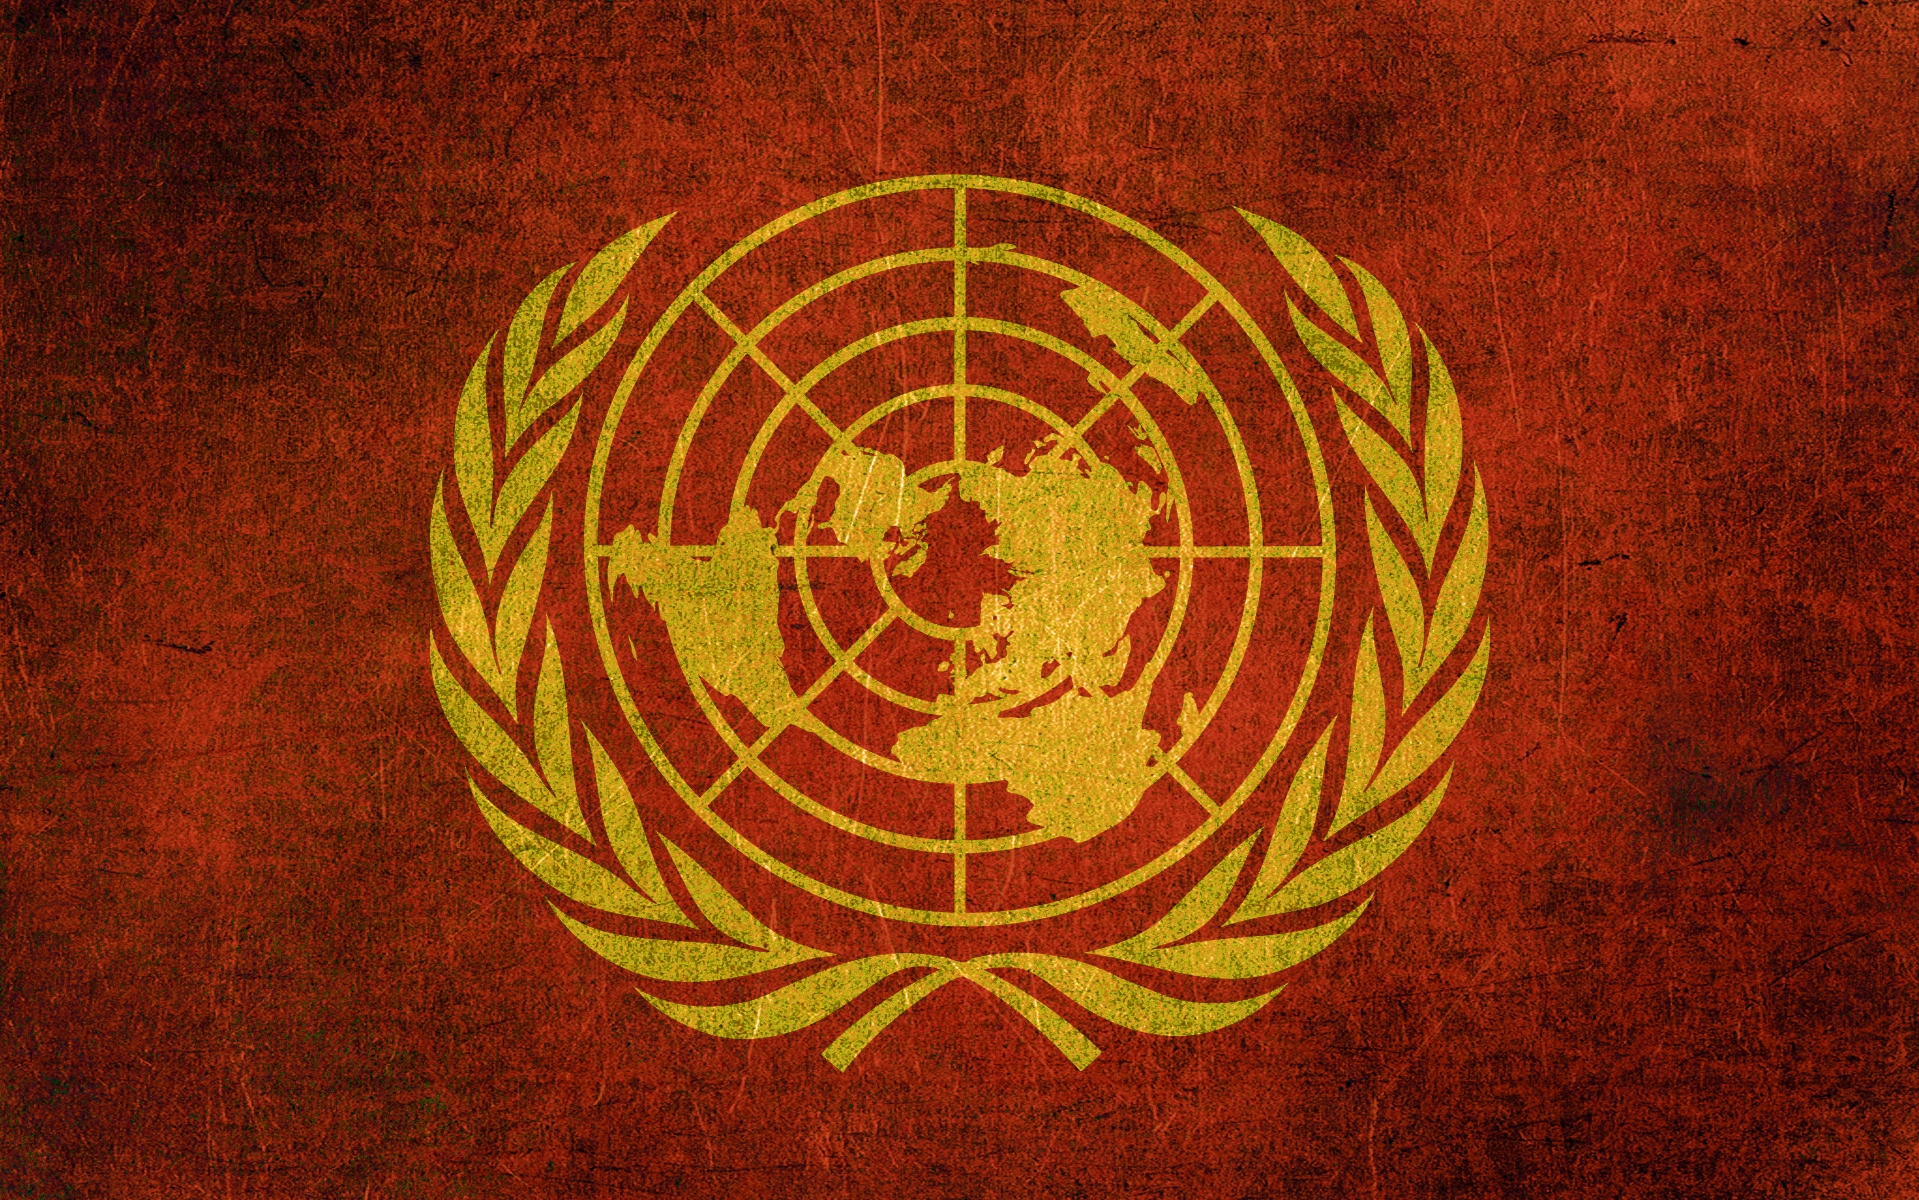 flags united nations 1919x1200 wallpaper High Quality Wallpapers 1919x1200